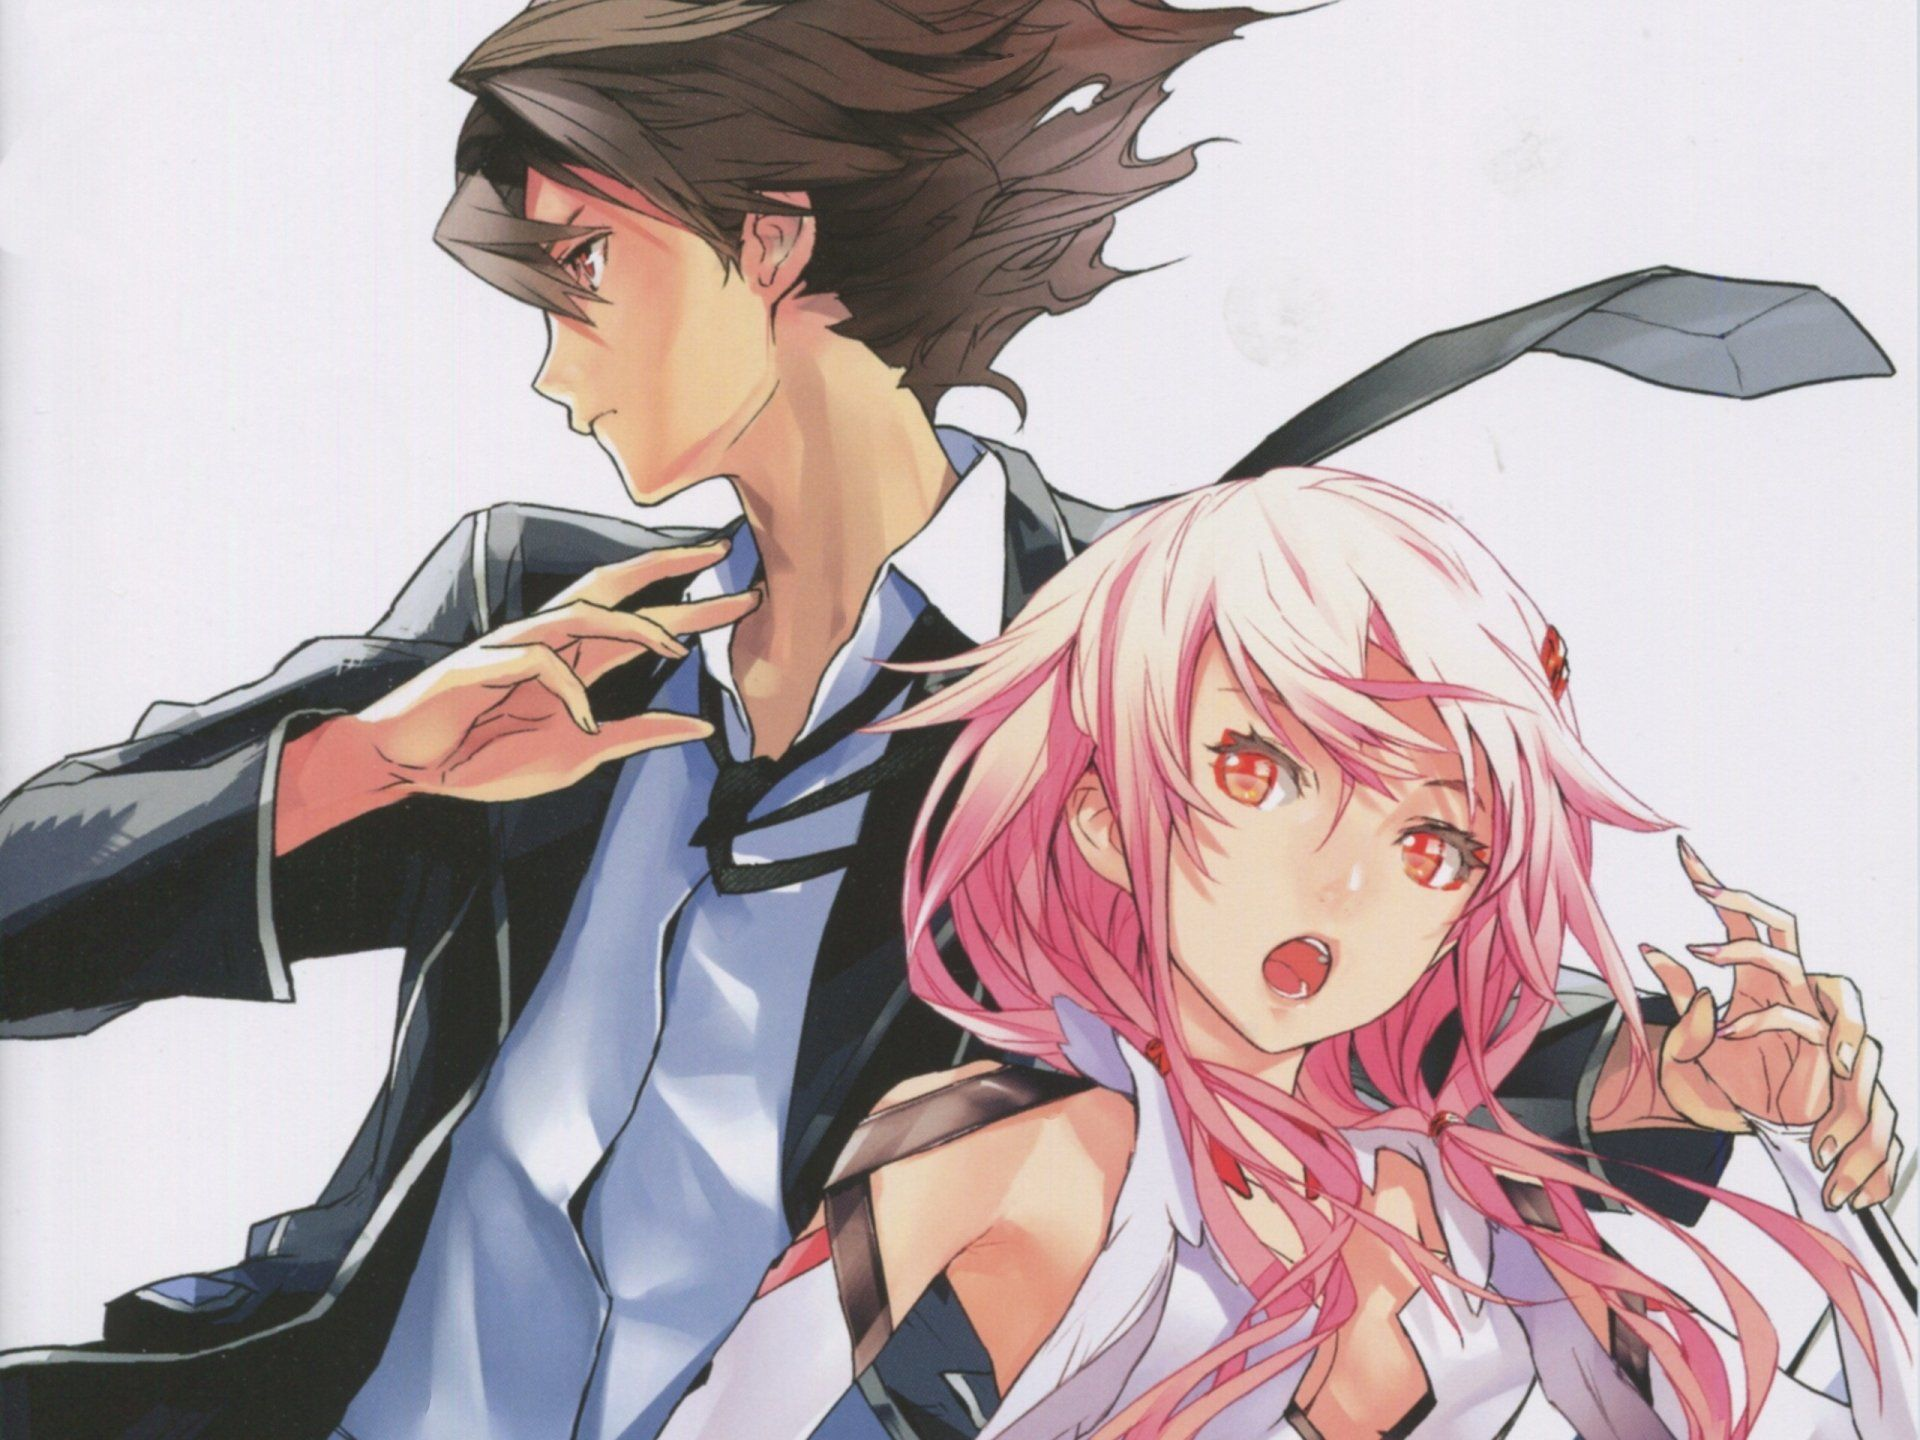 Anime Guilty Crown Anime Inori Yuzuriha Shu Ouma Wallpaper